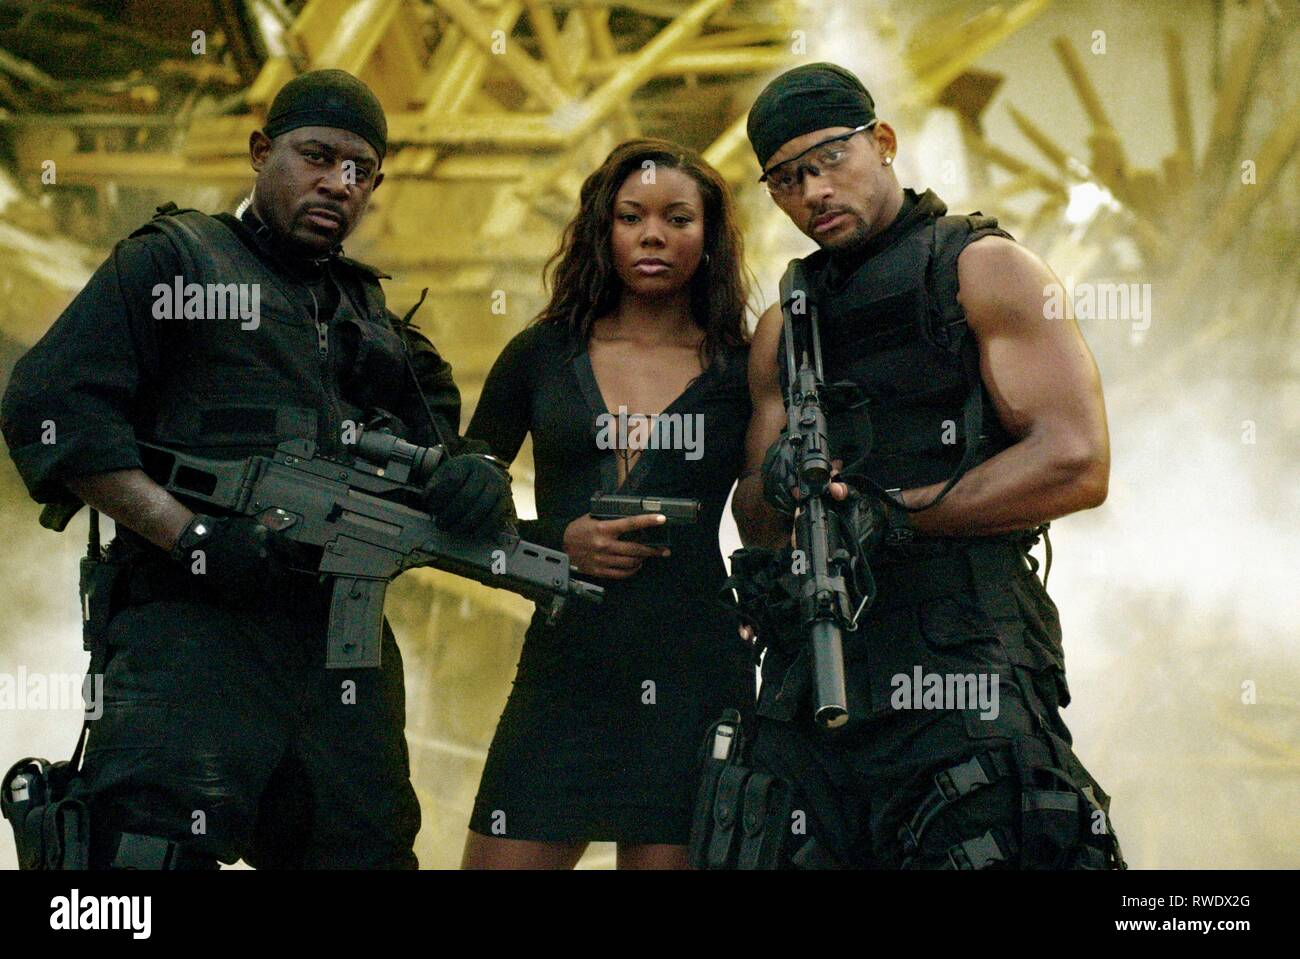 Bad Boys Ii High Resolution Stock Photography And Images Alamy